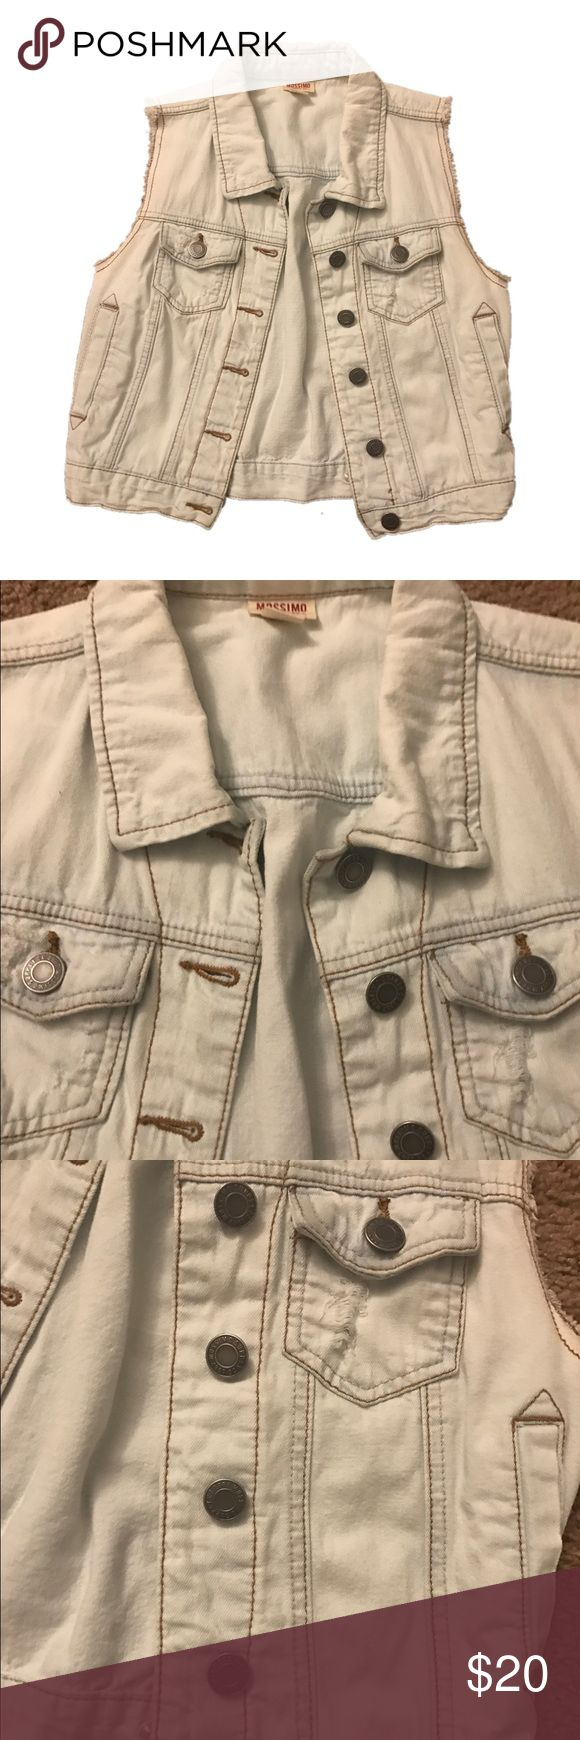 SLEEVELESS DENIM JACKET Very light blue color. Almost white. Perfect condition. No flaws. Ripped jean jacket so has a few rips throughout but that's the style to the jacket. Mossimo Supply Co Jackets & Coats Vests